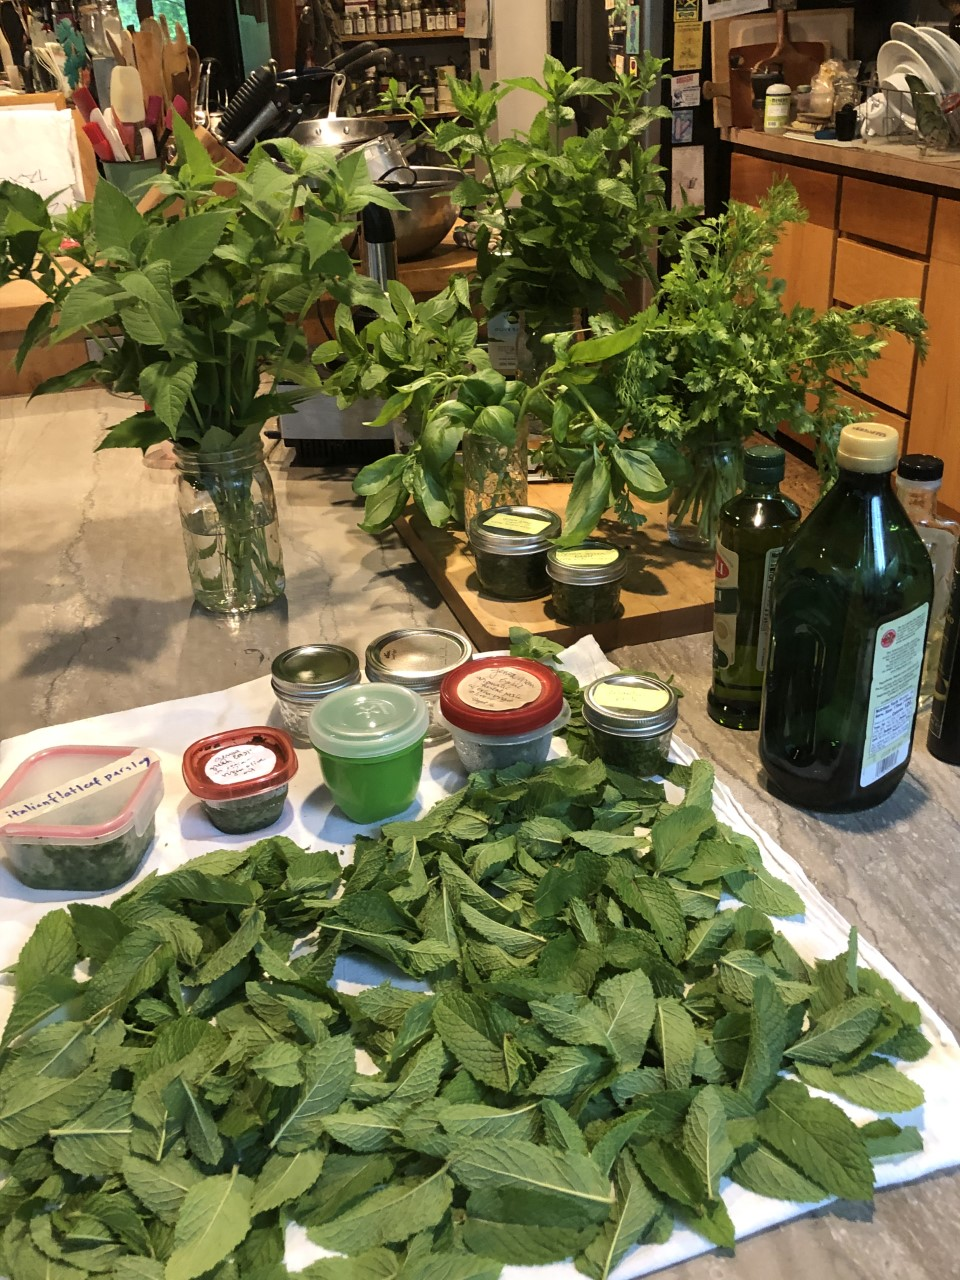 Making herbal pastes is a great way to capture the essence of herbs